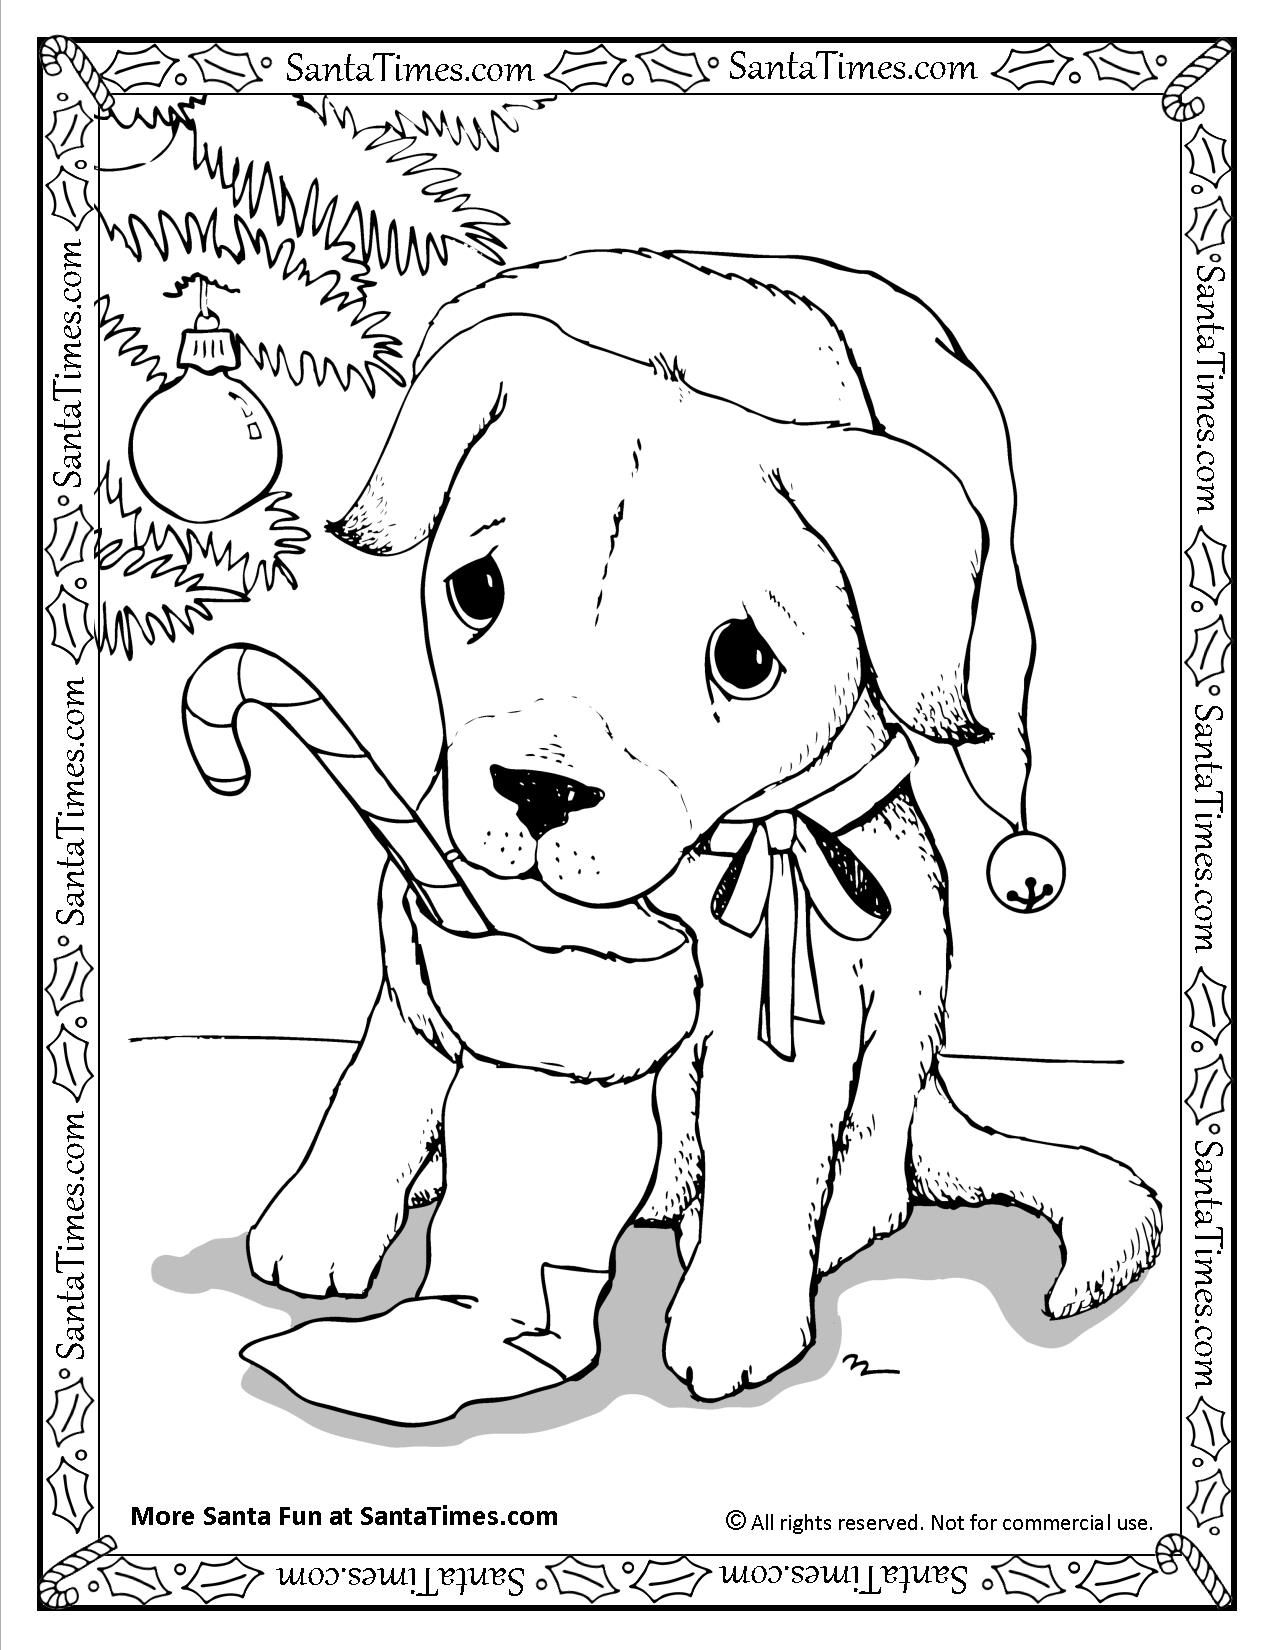 Christmas Coloring Dog With Santa Puppy Printable Page More Fun Activities